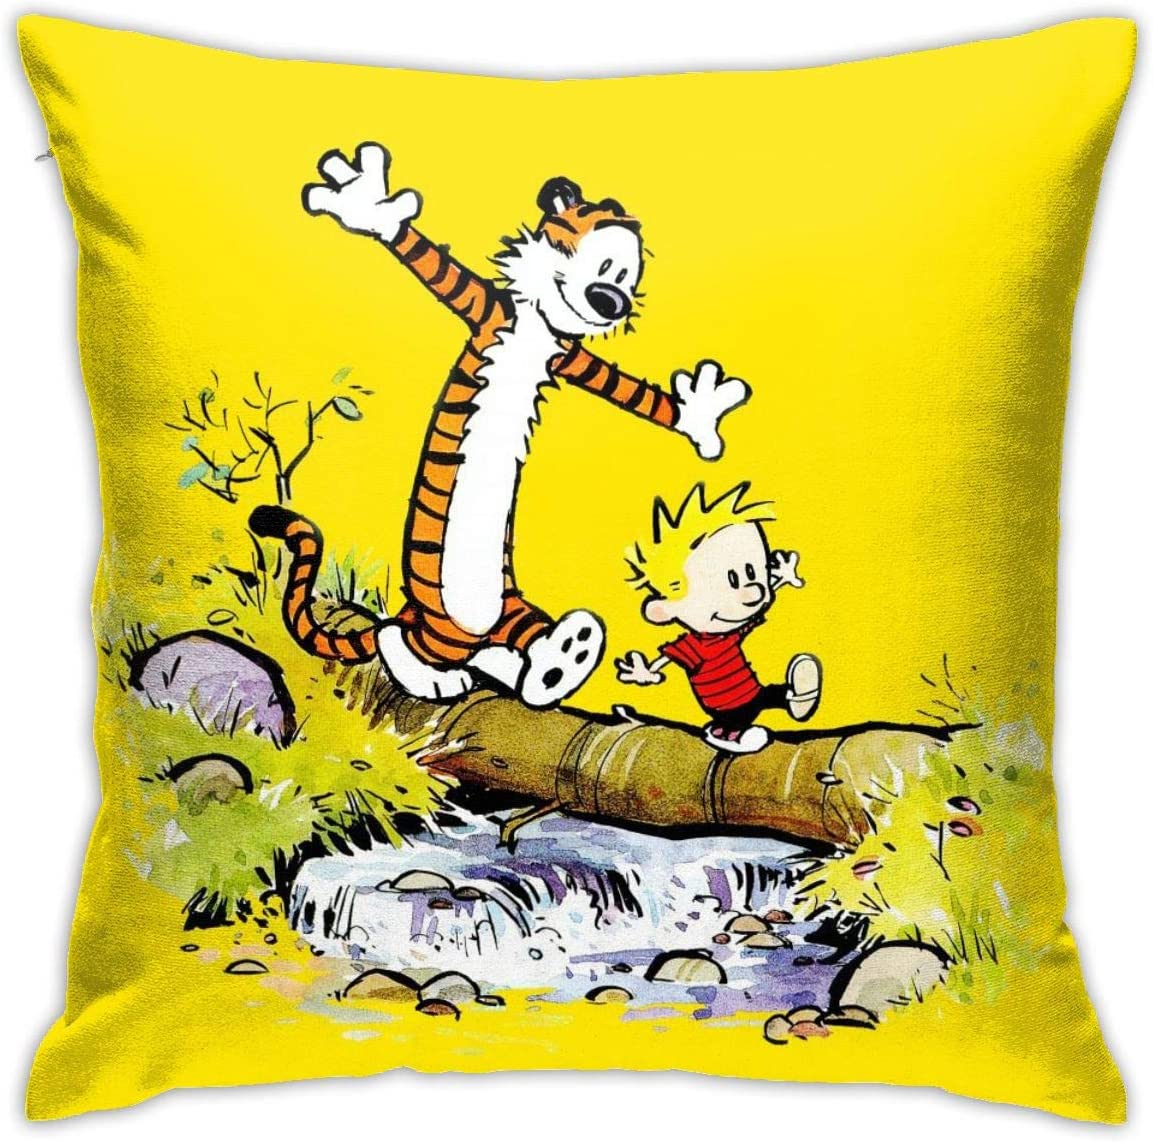 New Wanli CalvinandHobbes Pillow Cases, Silky Soft Cushion Covers for Couch Sofa Home Decor, 18x18inch (White 10)